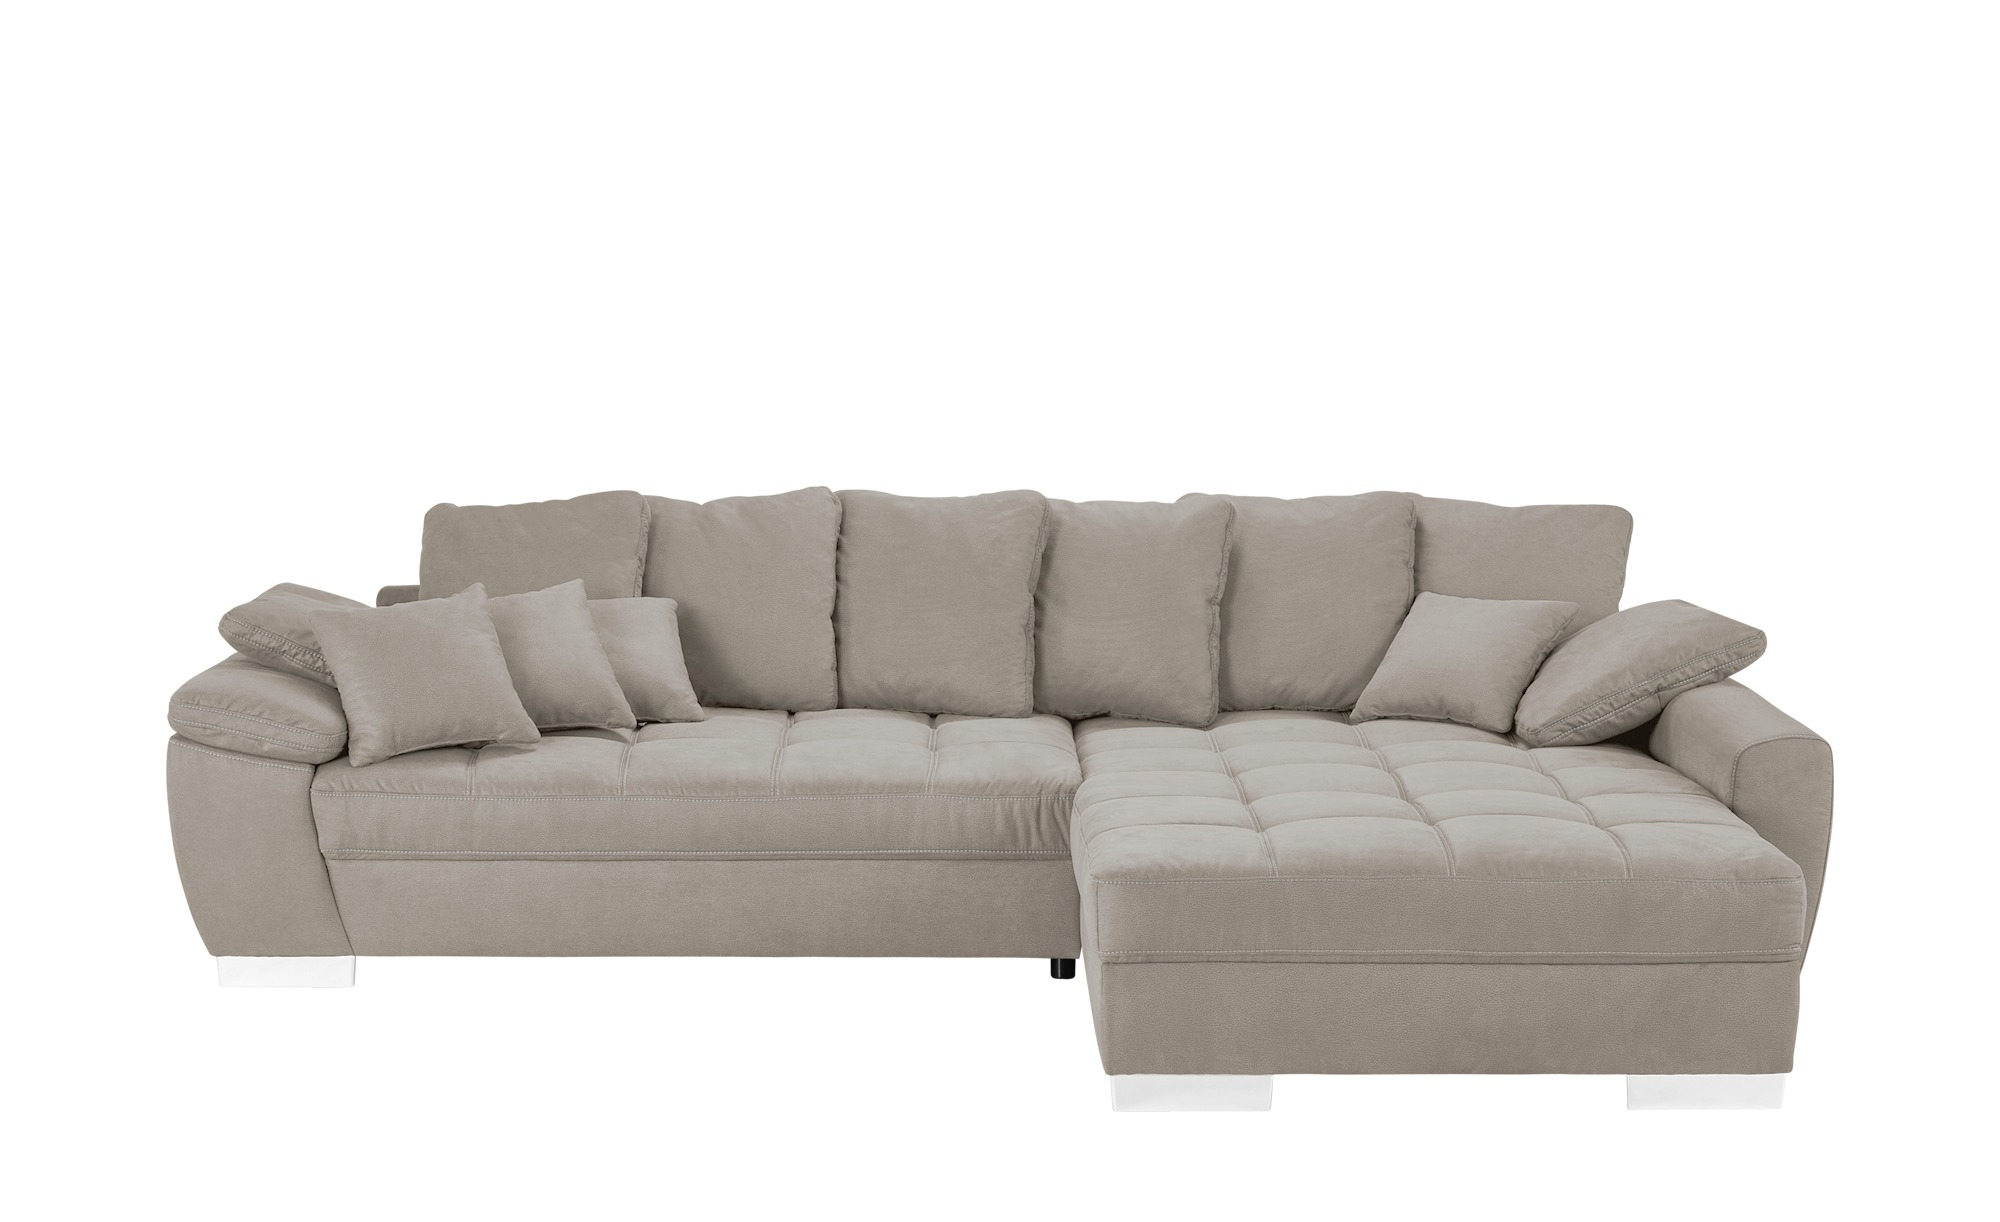 Sofa Big Günstig Günstig Ecksofa Sofa Design L Shape Big Sofa Kaufen